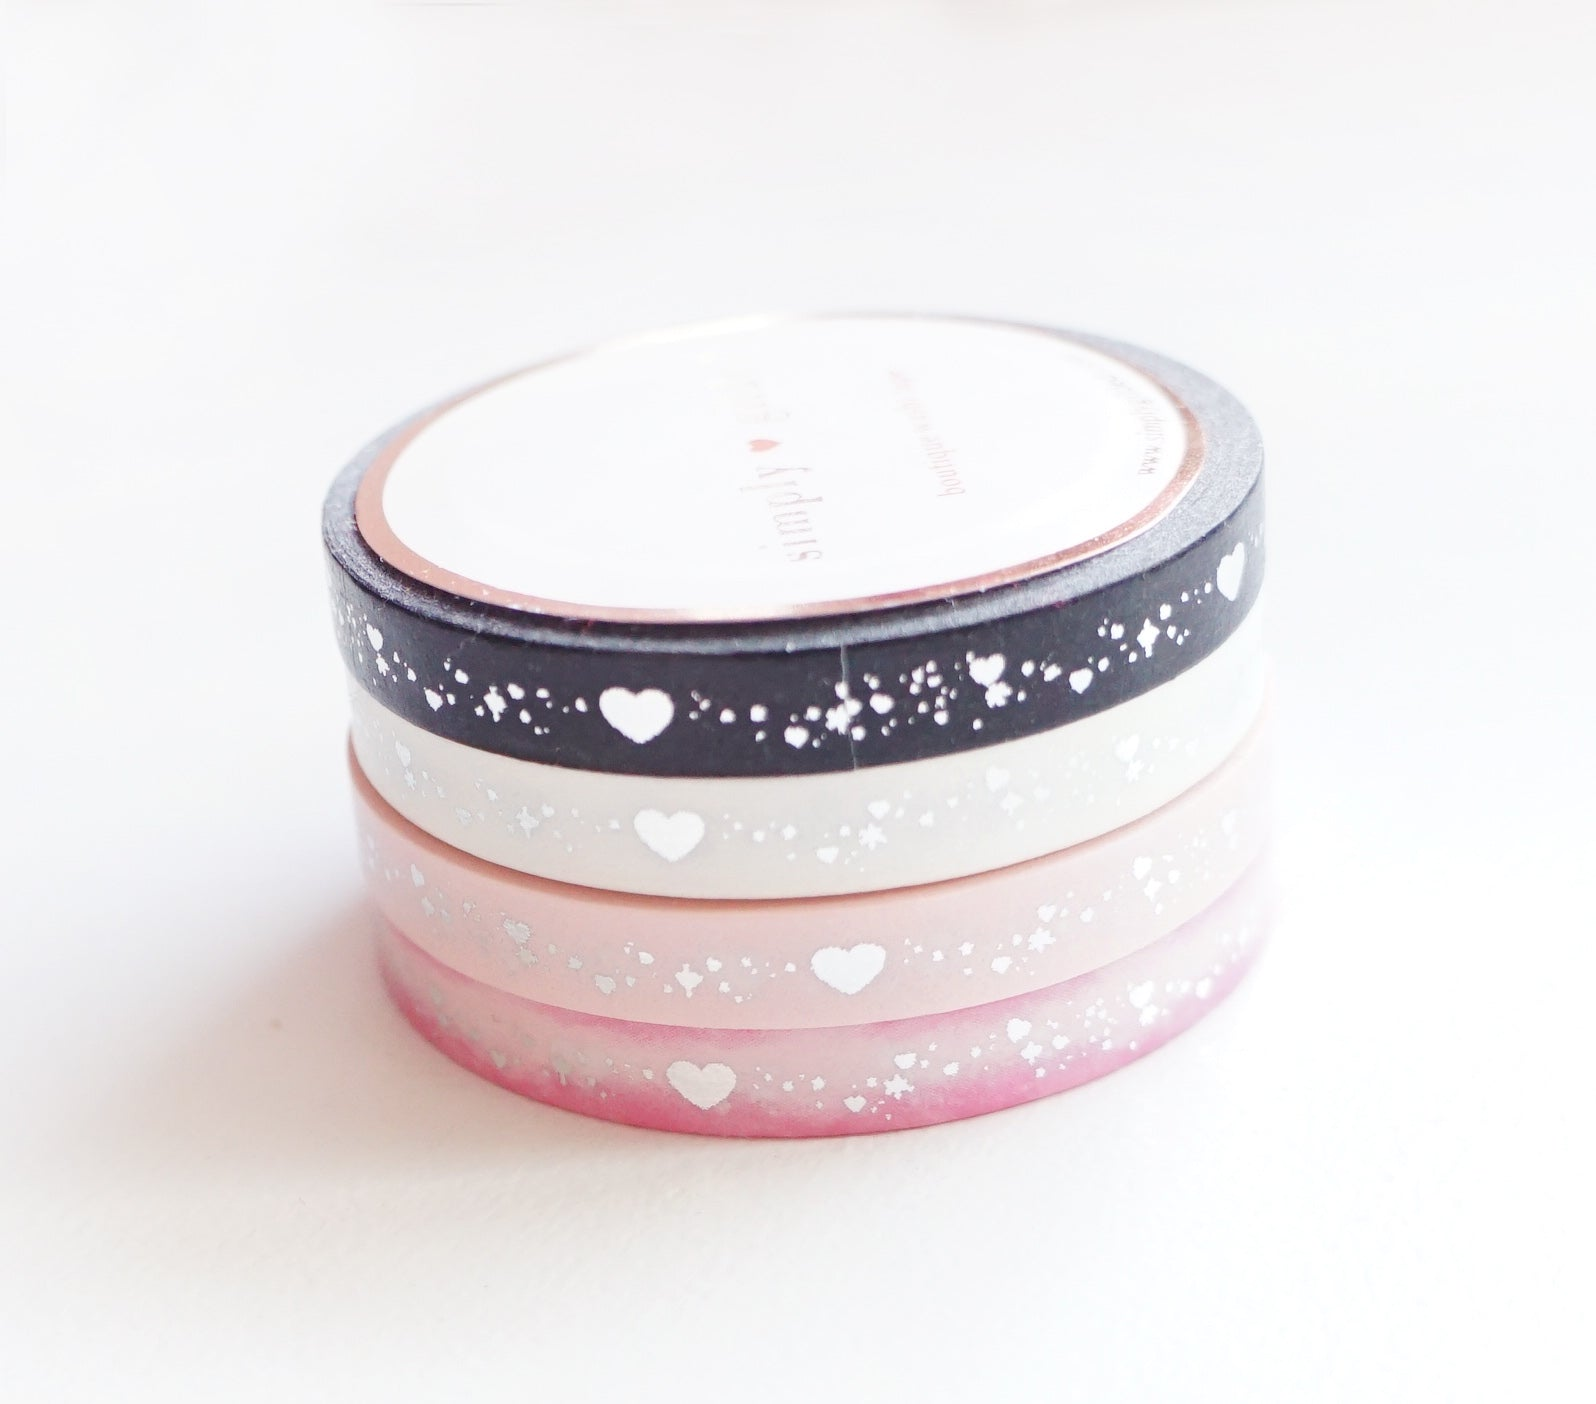 PERFORATED WASHI TAPE 6mm set of 4 - Valentine's SHIMMER HEART SET + Silver foil (January 31 Mini Release)